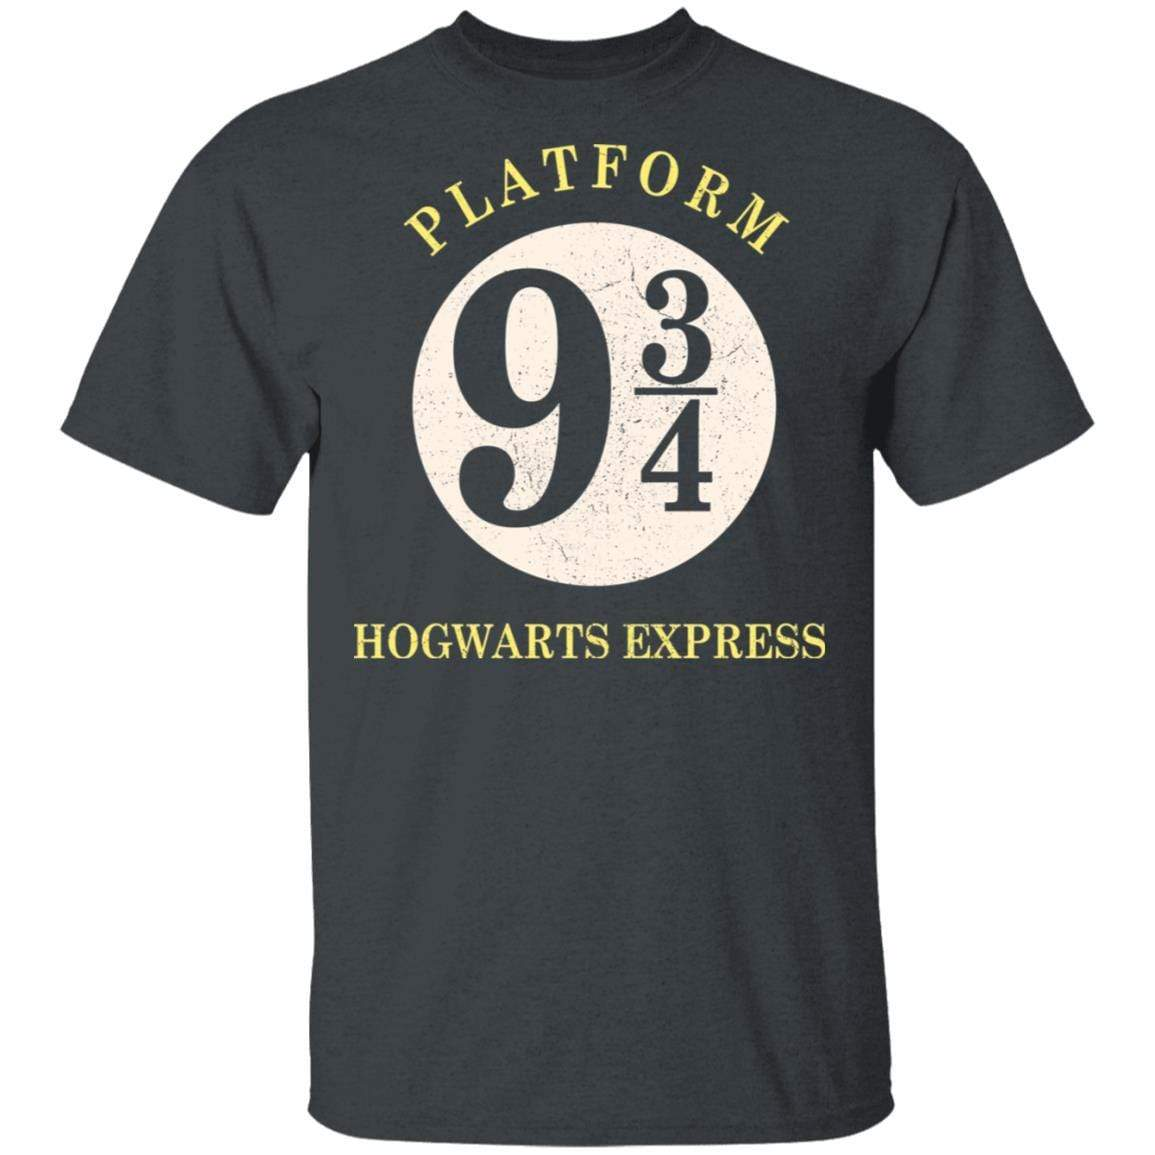 Platform 9 3-4 Hogwarts Express Harry Potter T-Shirts, Hoodies 1049-9957-88445024-48192 - Tee Ript